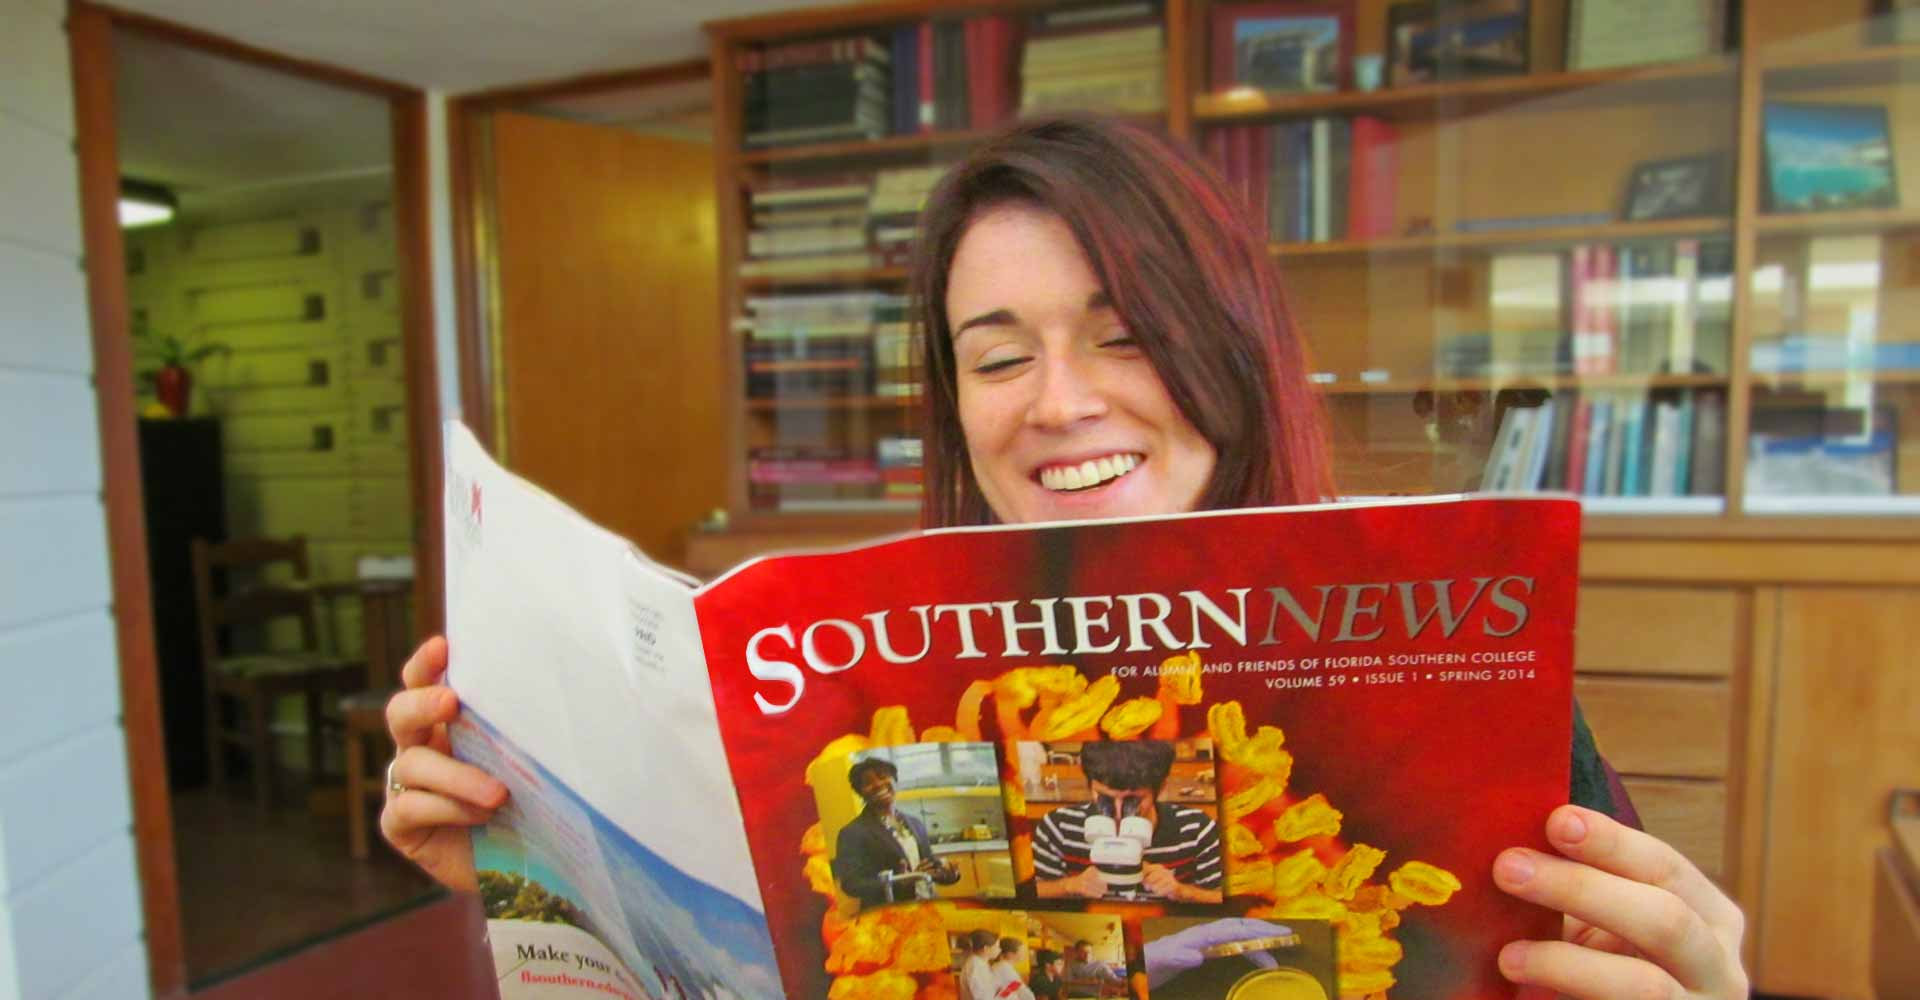 Alumni reading the Southern News magazine